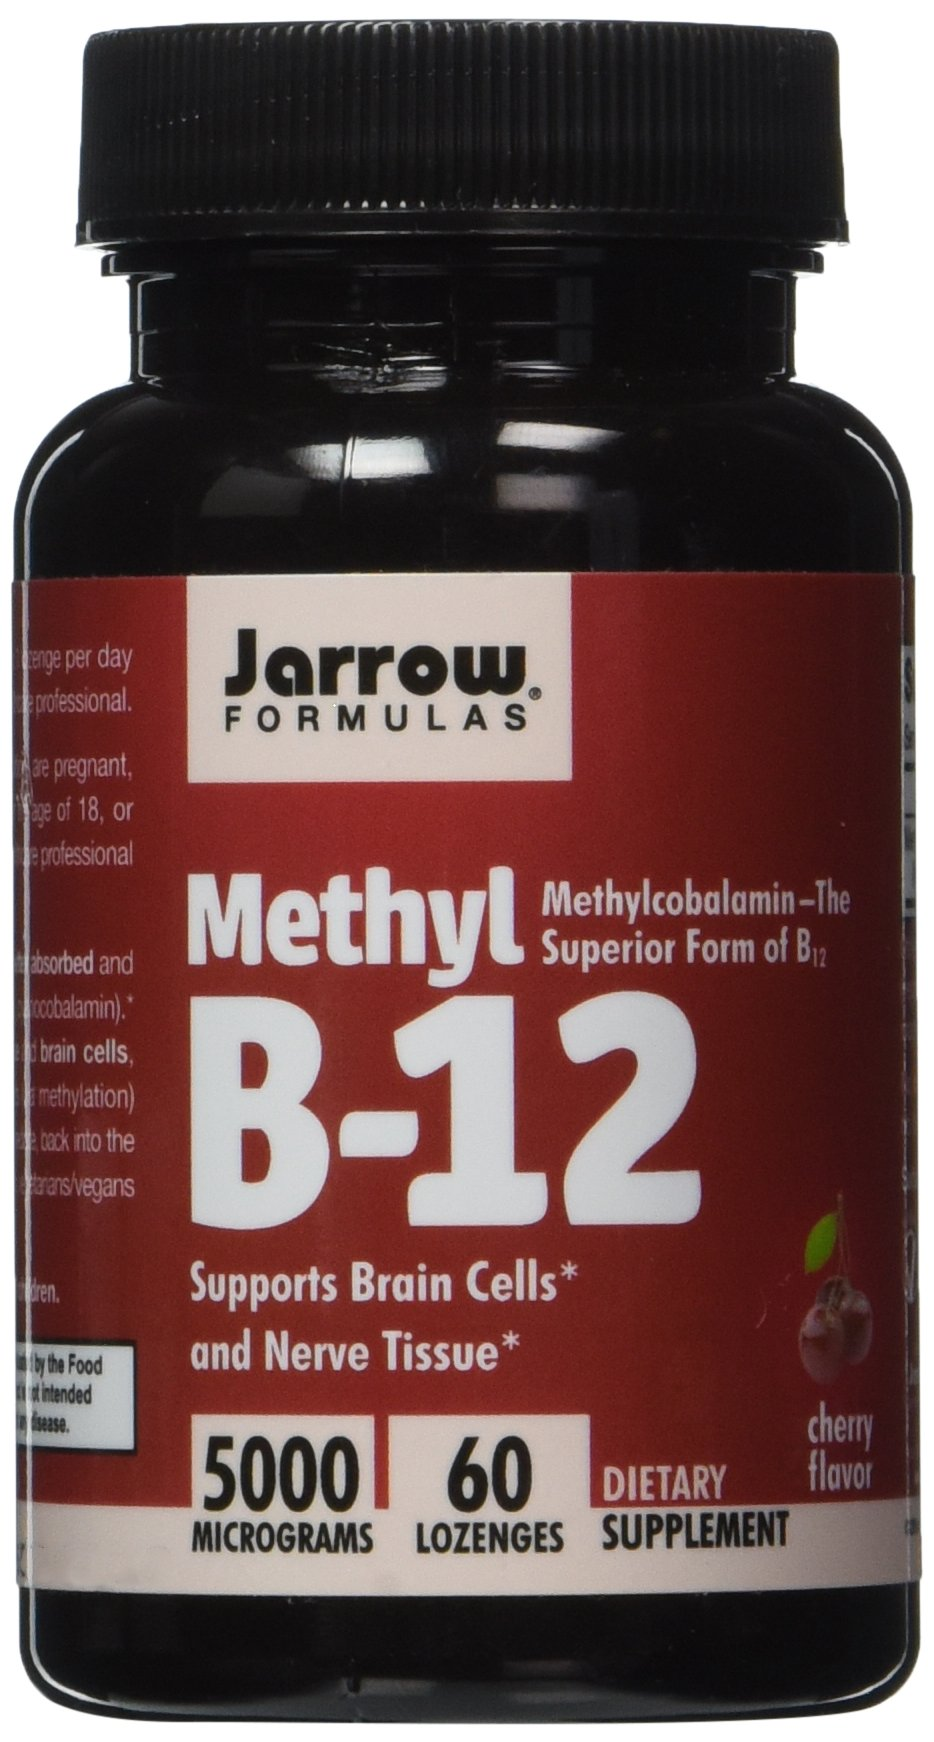 Jarrow Formulas Methylcobalamin (Methyl B12), Supports Brain Cells, 5000 mcg, 60 Lozenges (Pack of 2)